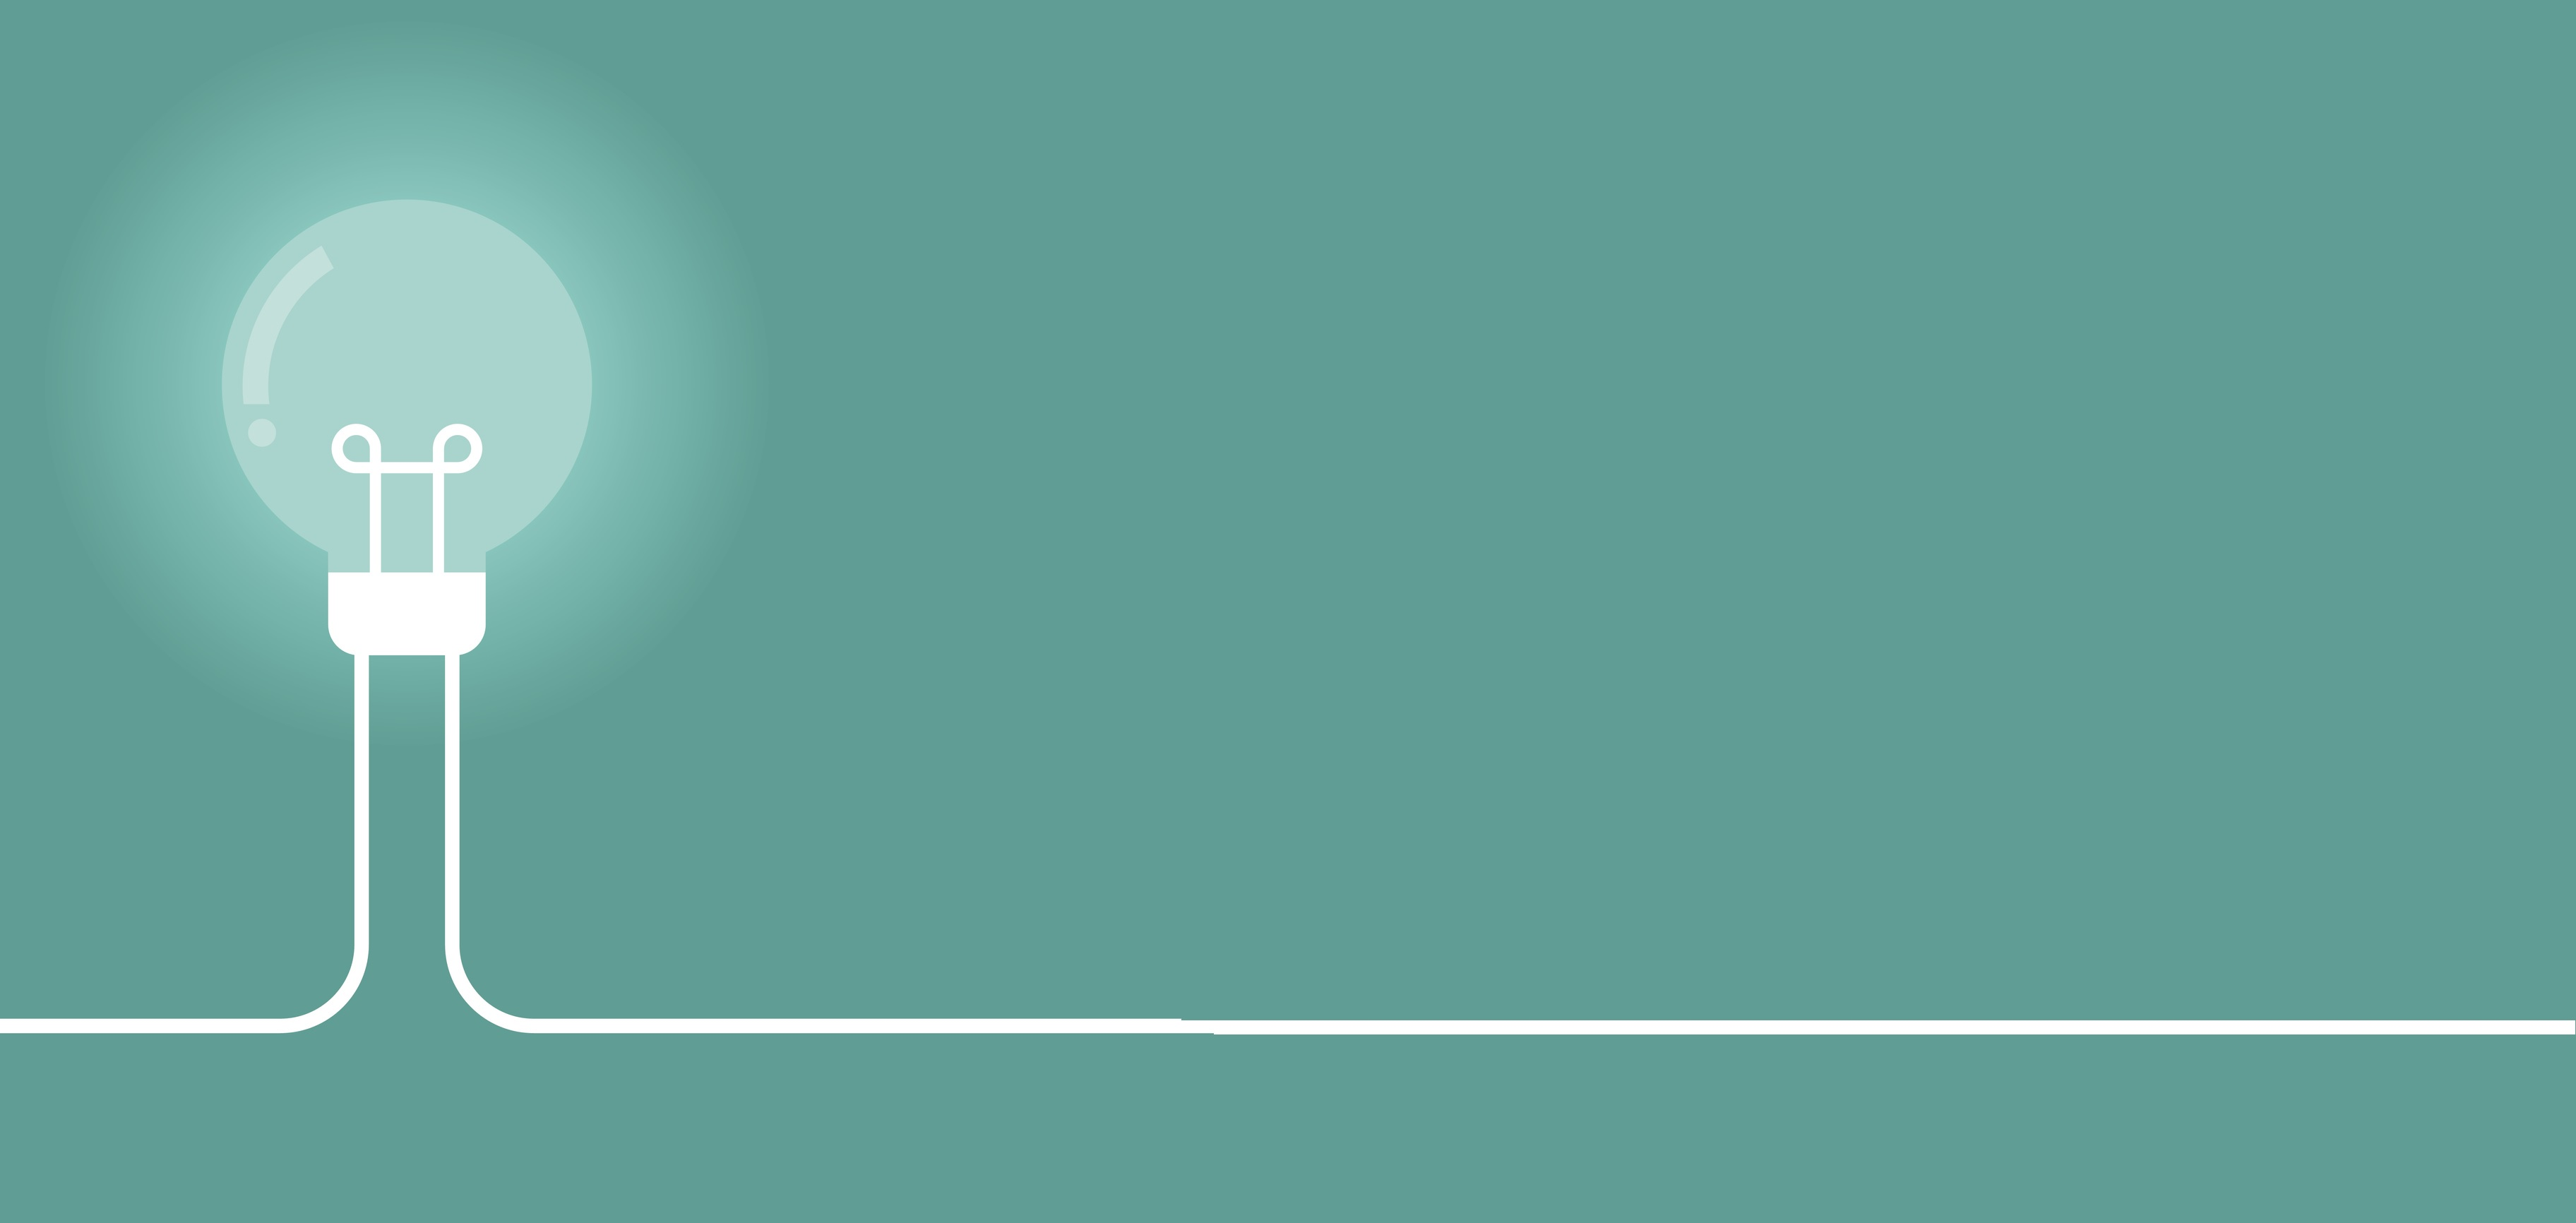 Bulb vector in white against a light teal background